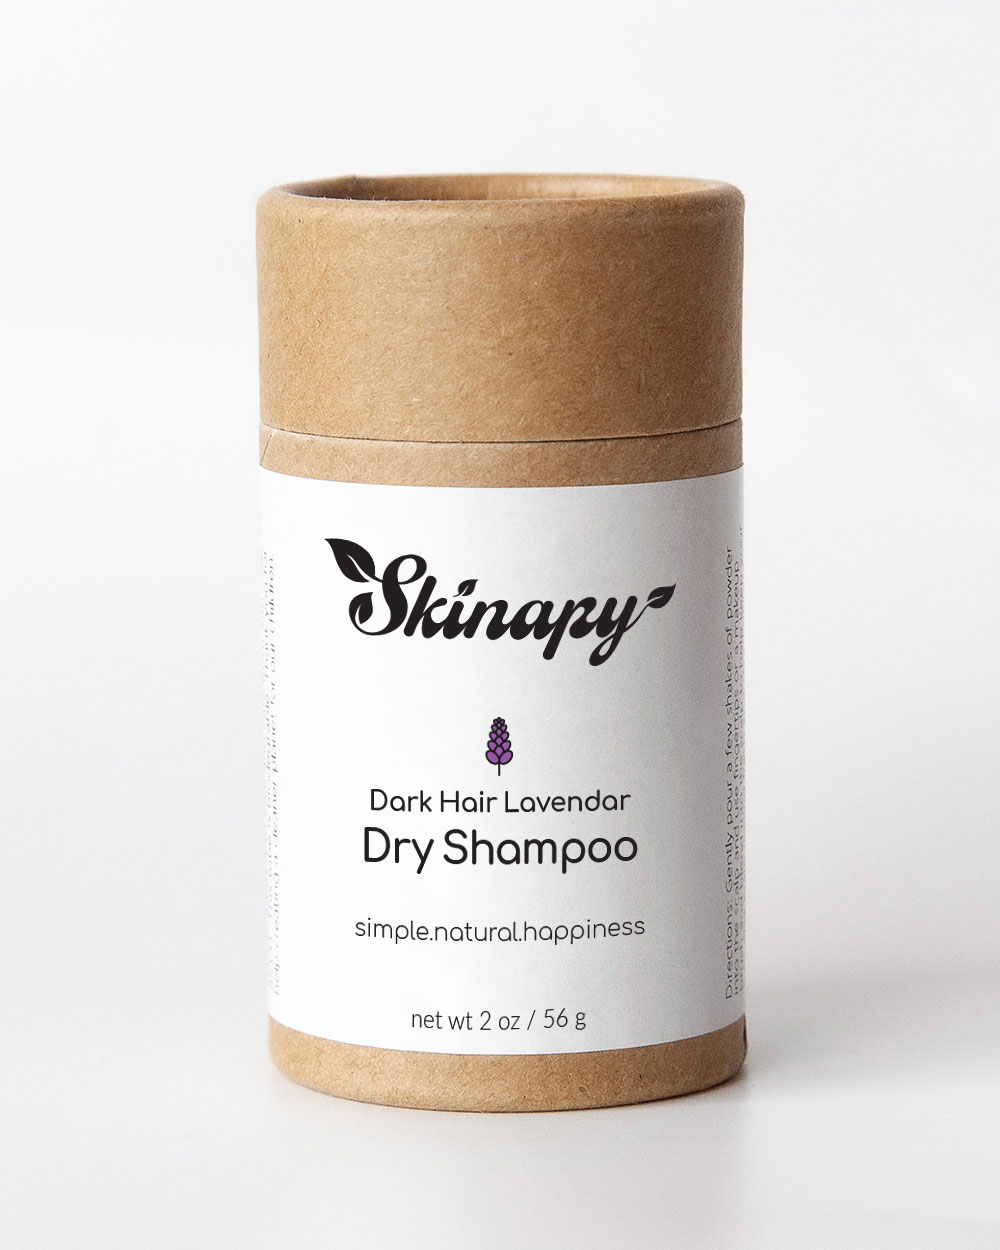 Skinapy natural organic dry shampoo for dark hair with lavender sweet orange scent